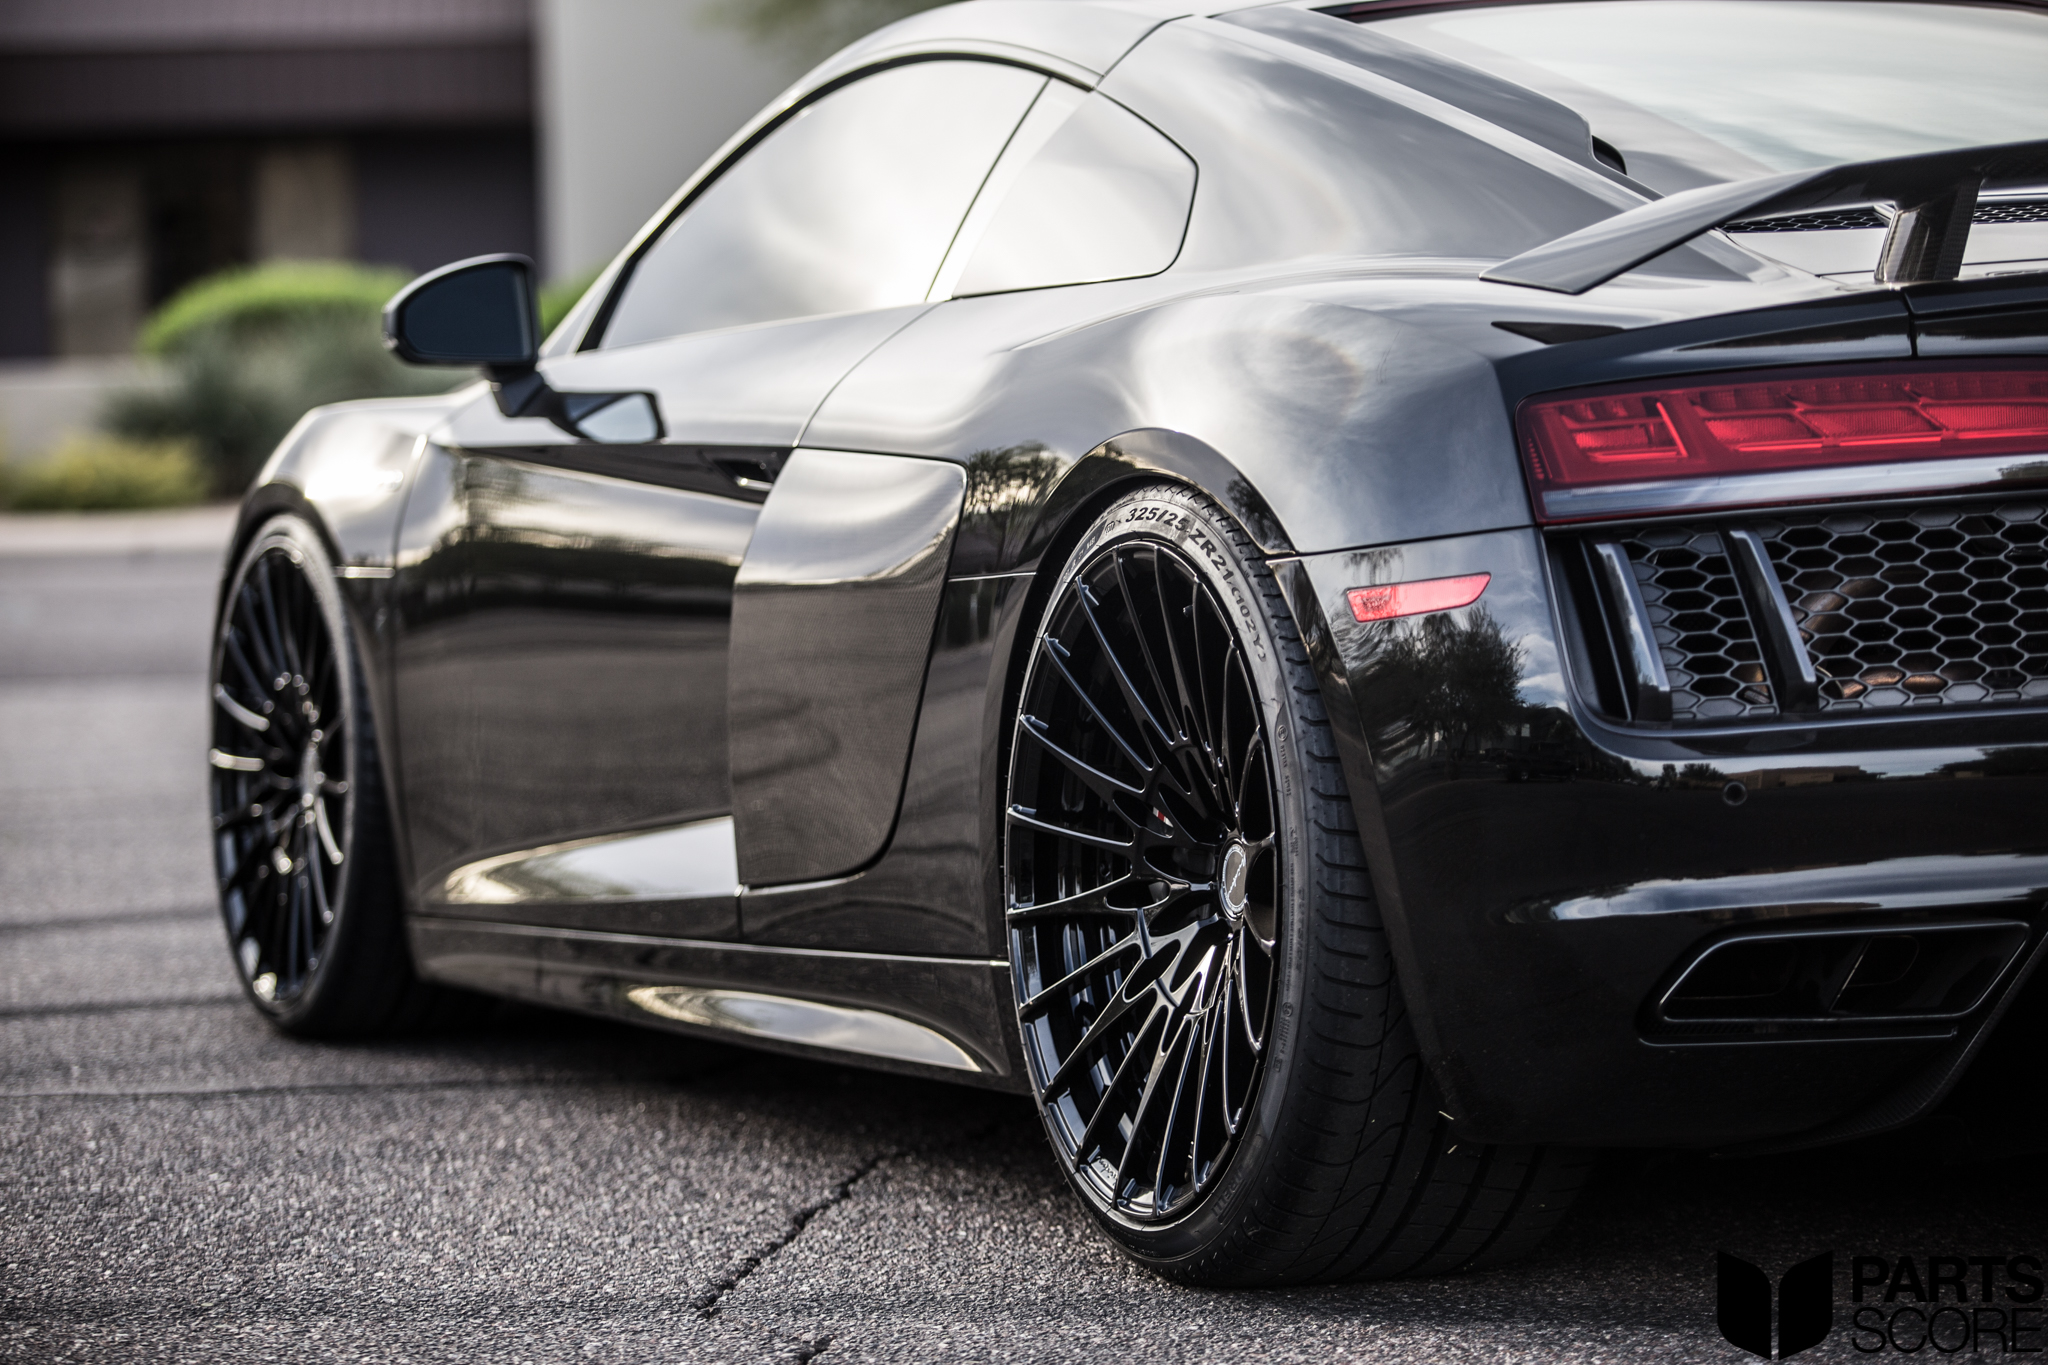 2 piece wheels, 205mph, 605hp, all wheel drive, audi r8, audi r8 coilovers, audi r8 modifications, audi r8 mods, audi r8 shock failure, audi r8 v10, audi r8 v8, audi rs, audi wheels, audi wheels scottsdale, audir8, awd, brixton, brixton forged, brixton forged wheels, brixton wheels, Coilovers, coils, height adjustable spring, hyper car, new wheels, parts score, partsscore, quattro, r8, r8 coilovers, r8 lms, r8 springs, r8 suspension, r8 v10 +, r8 v10 coilovers, r8 v10 h.a.s. kit, r8 v10 has kit, r8 v10 height adjustable spring kit, r8 v10 plus, r8 v10 plus mods, r8 v10 springs, r8 v10 wheels, r8 v8 coilovers, r8 v8 has kit, r8 v8 springs, r8 wheels, r8racecar, r8v10+, r8v10plus, r9v10, race, racecar, racing, slammed, Springs, stance, super car, supercar, track, track day, v10 plus mods, v8 v10, wheels